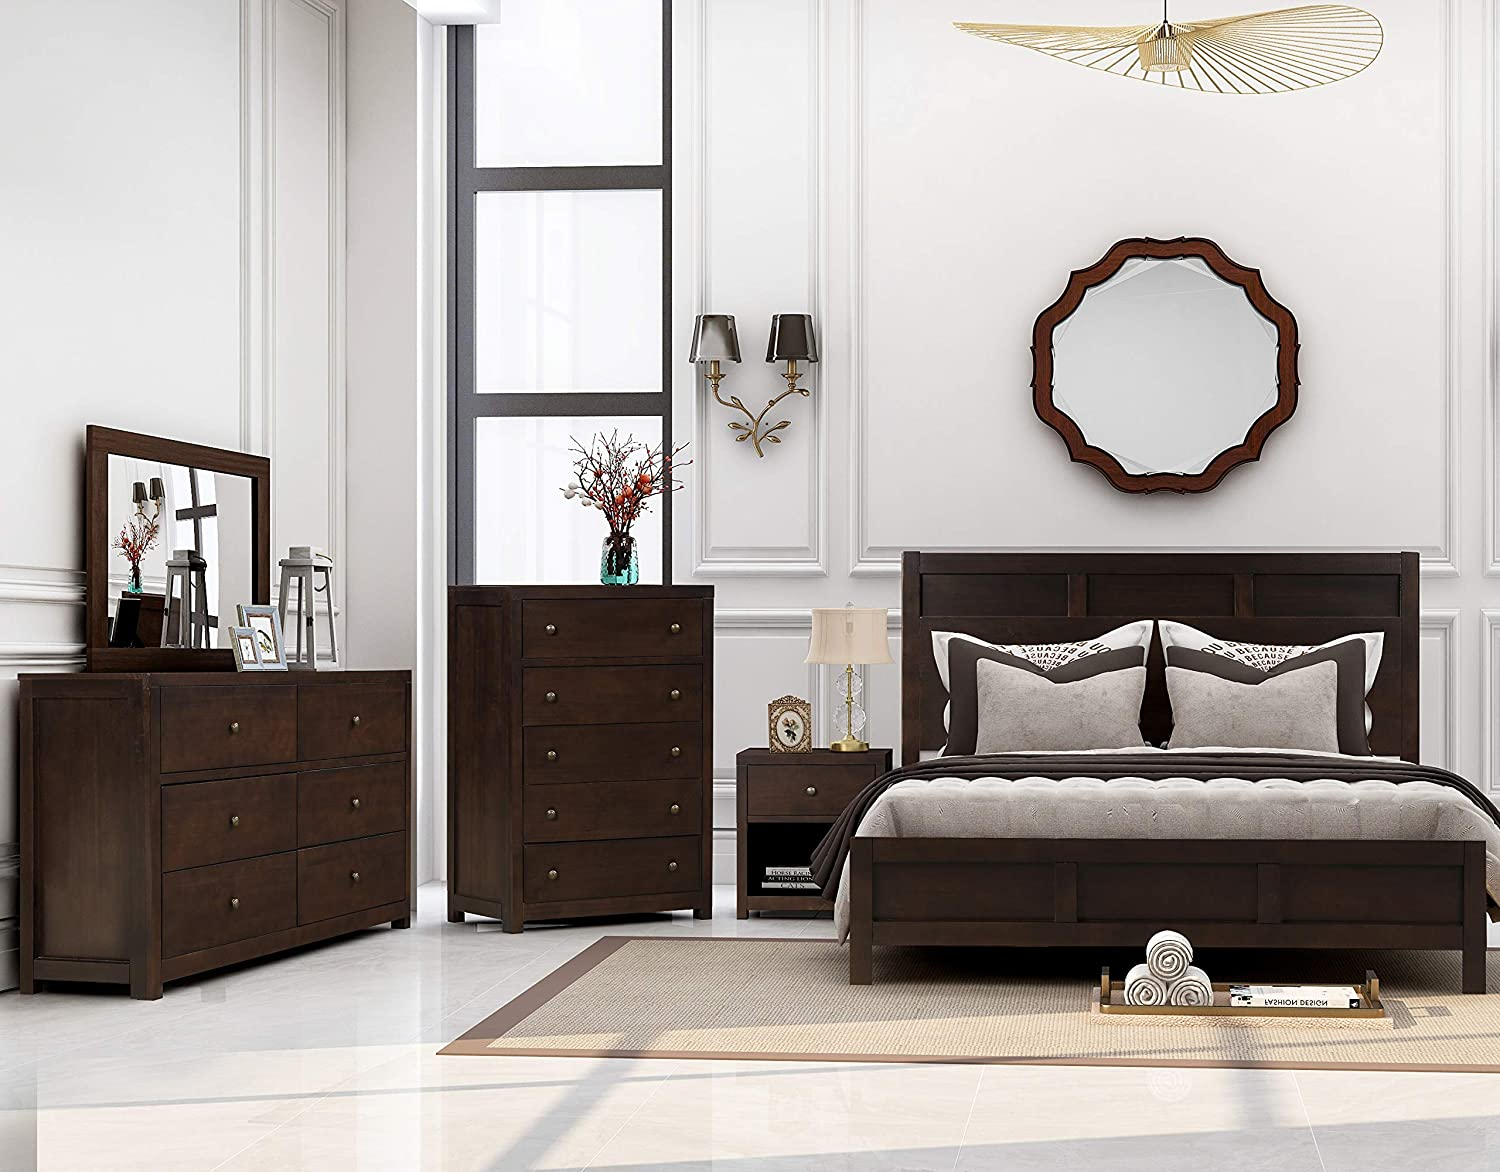 Amazon Com Knocbel 3 Pieces Classic Rich Brown Finish Wood Bedroom Set Queen Size Bed 6 Drawer Dresser 1 Nightstand Brown